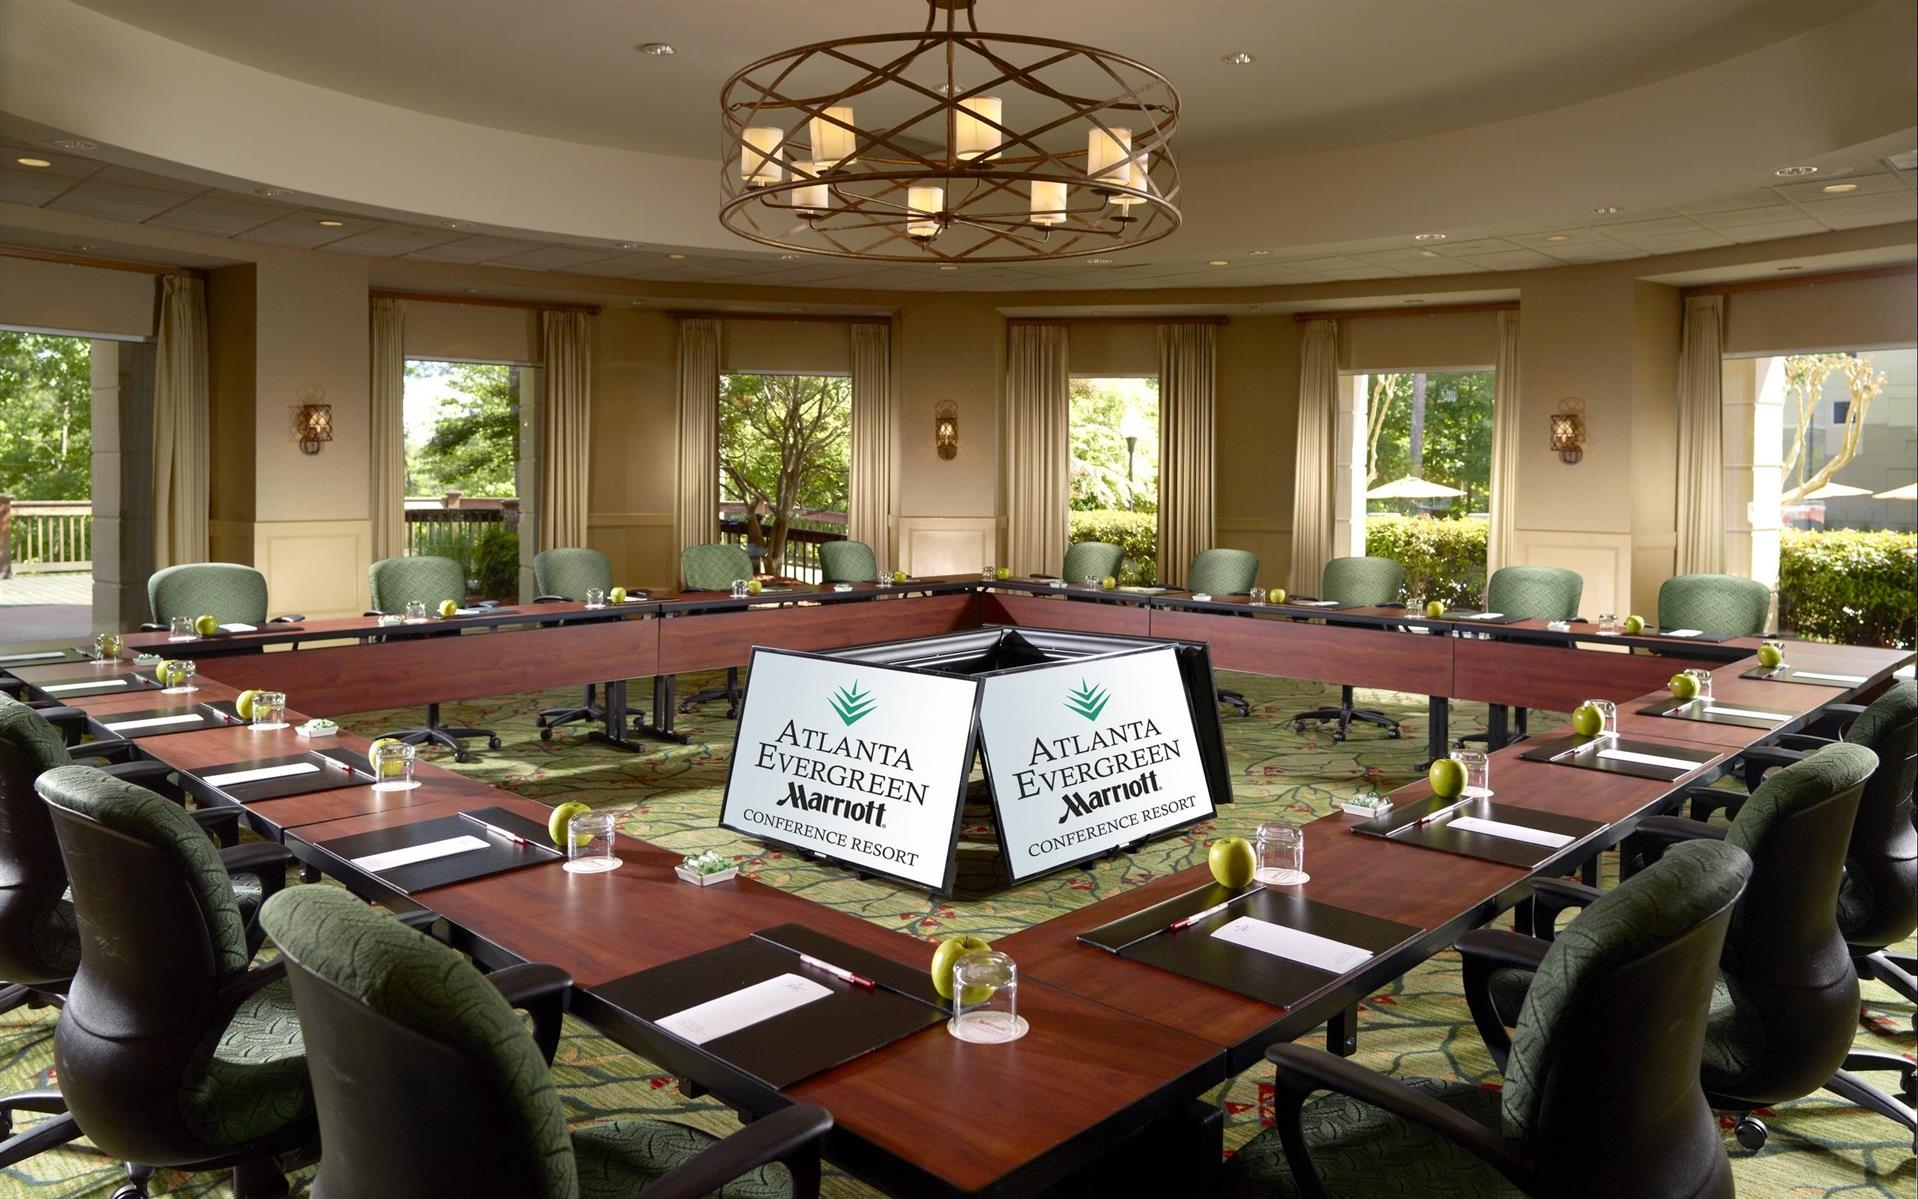 meetings and events at atlanta evergreen marriott conference resort